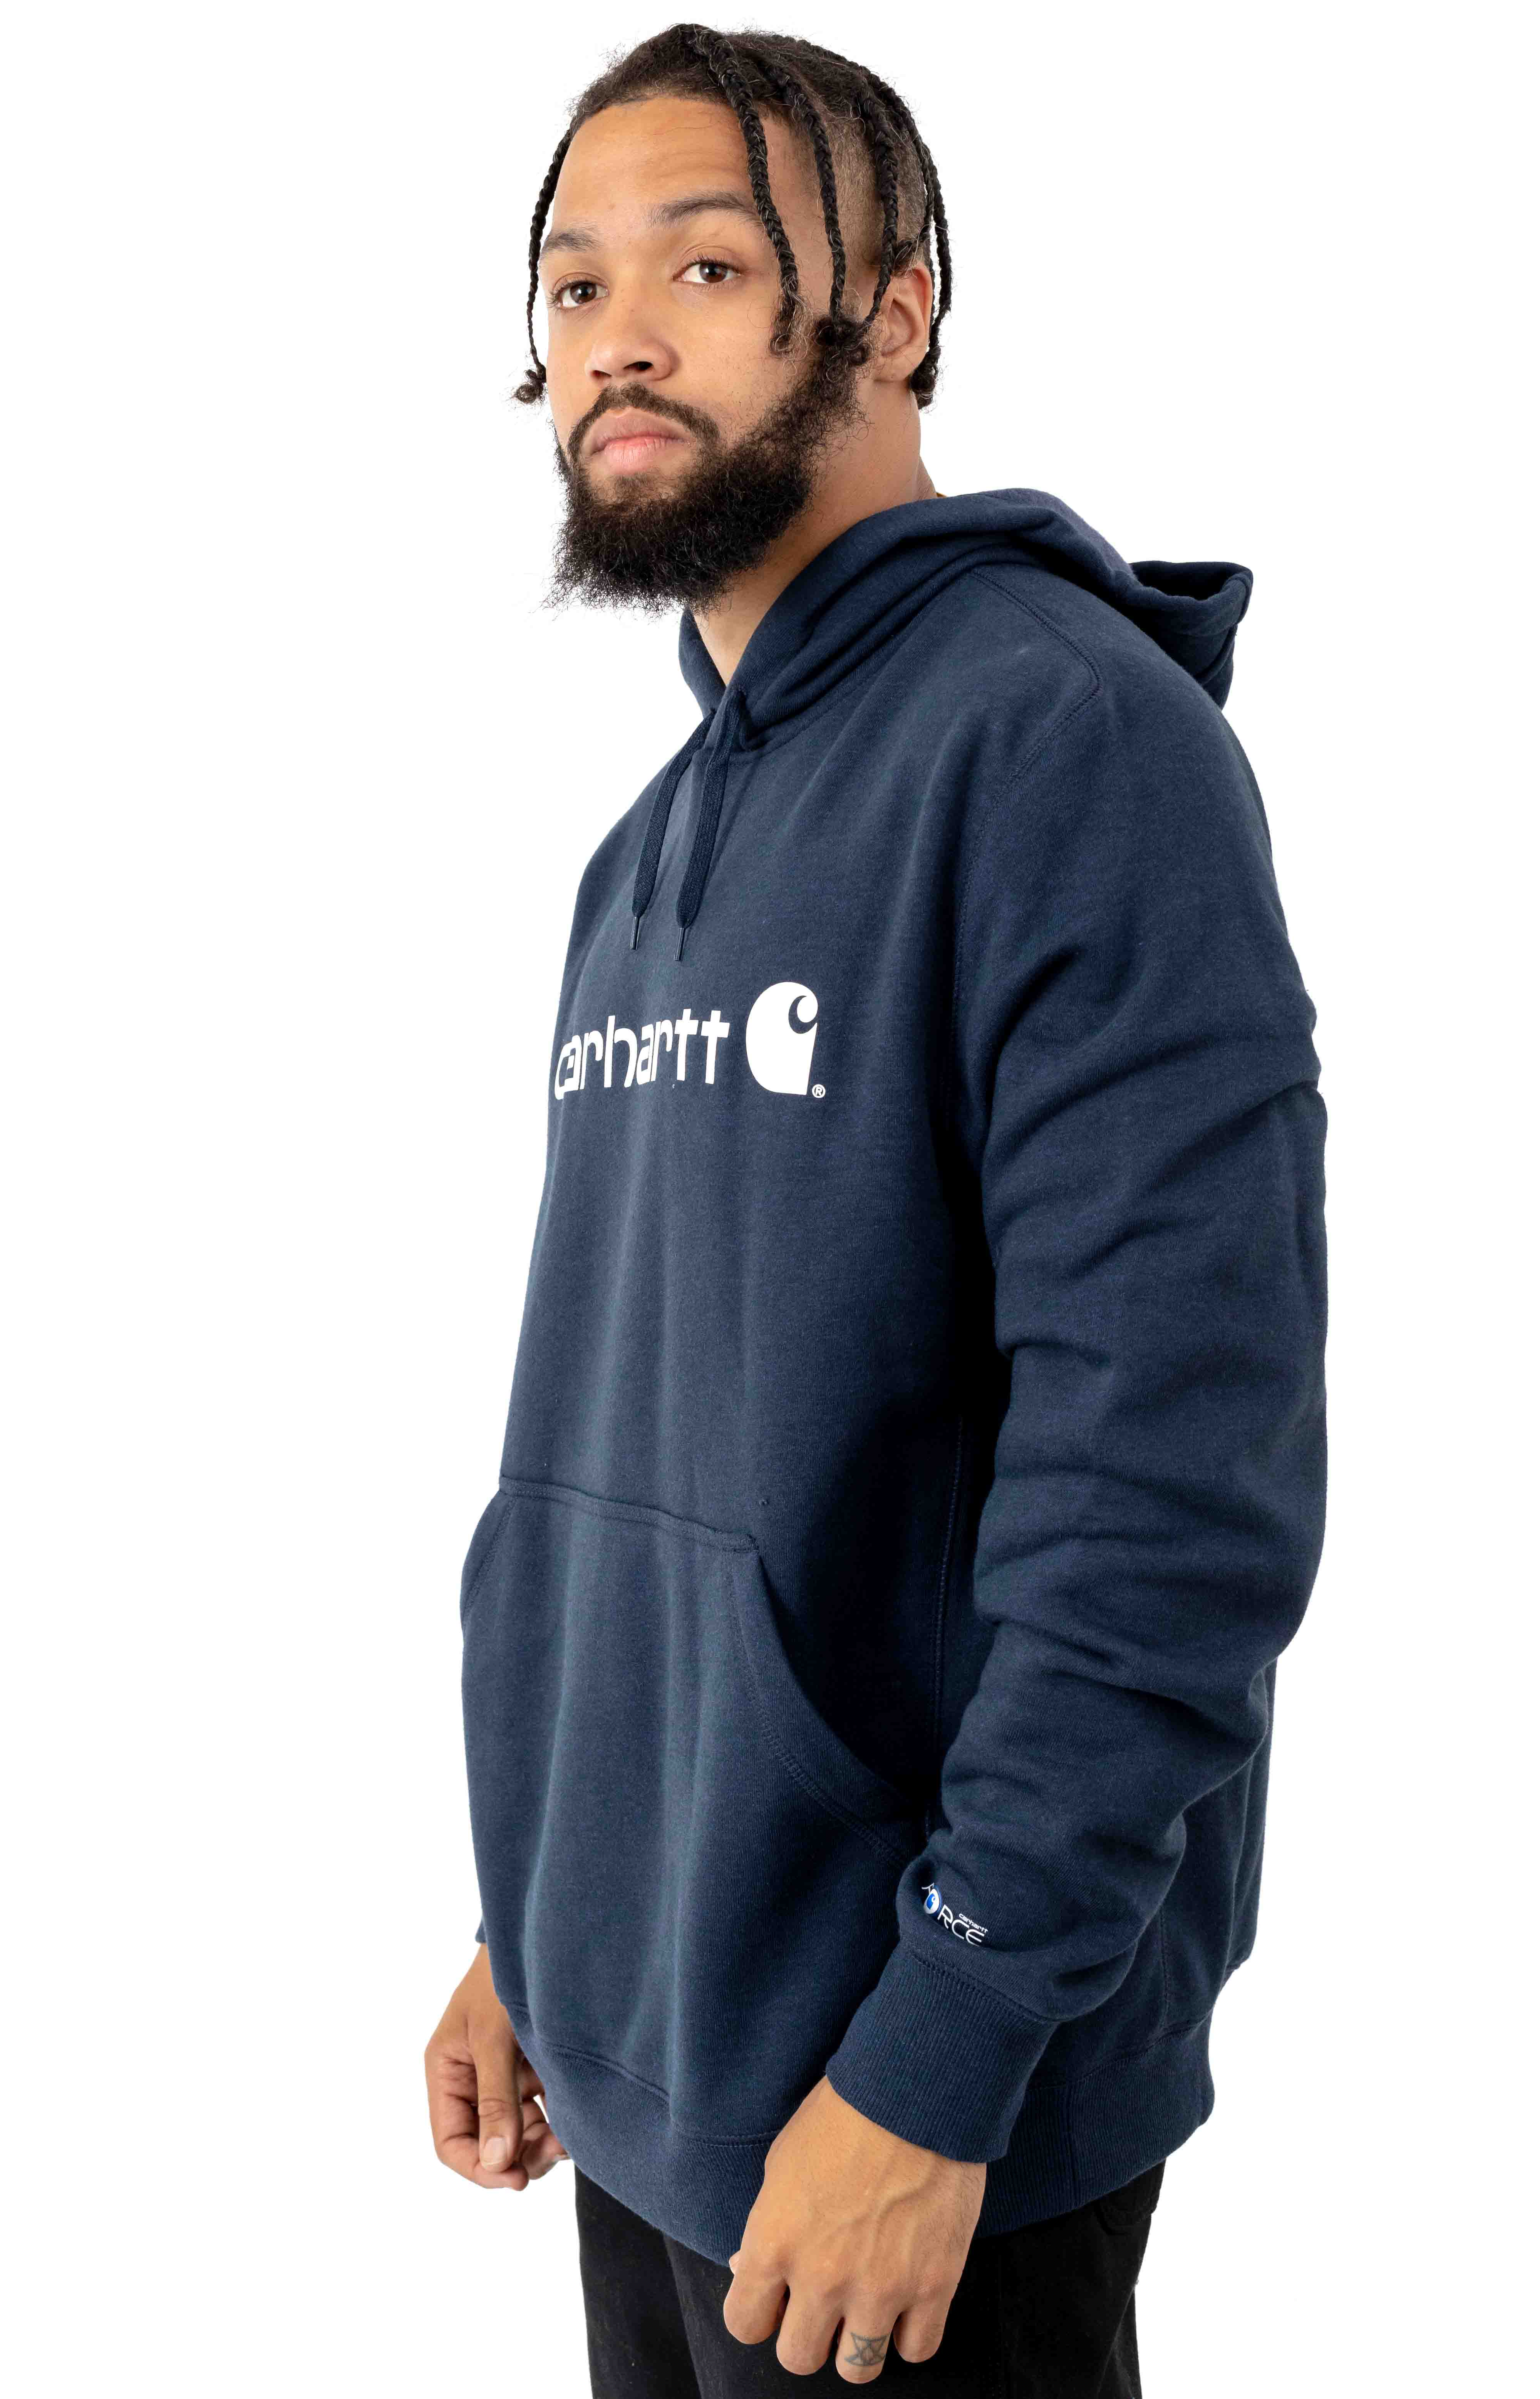 (103873) Force Delmont Signature Graphic Pullover Hoodie - Navy Heather  2